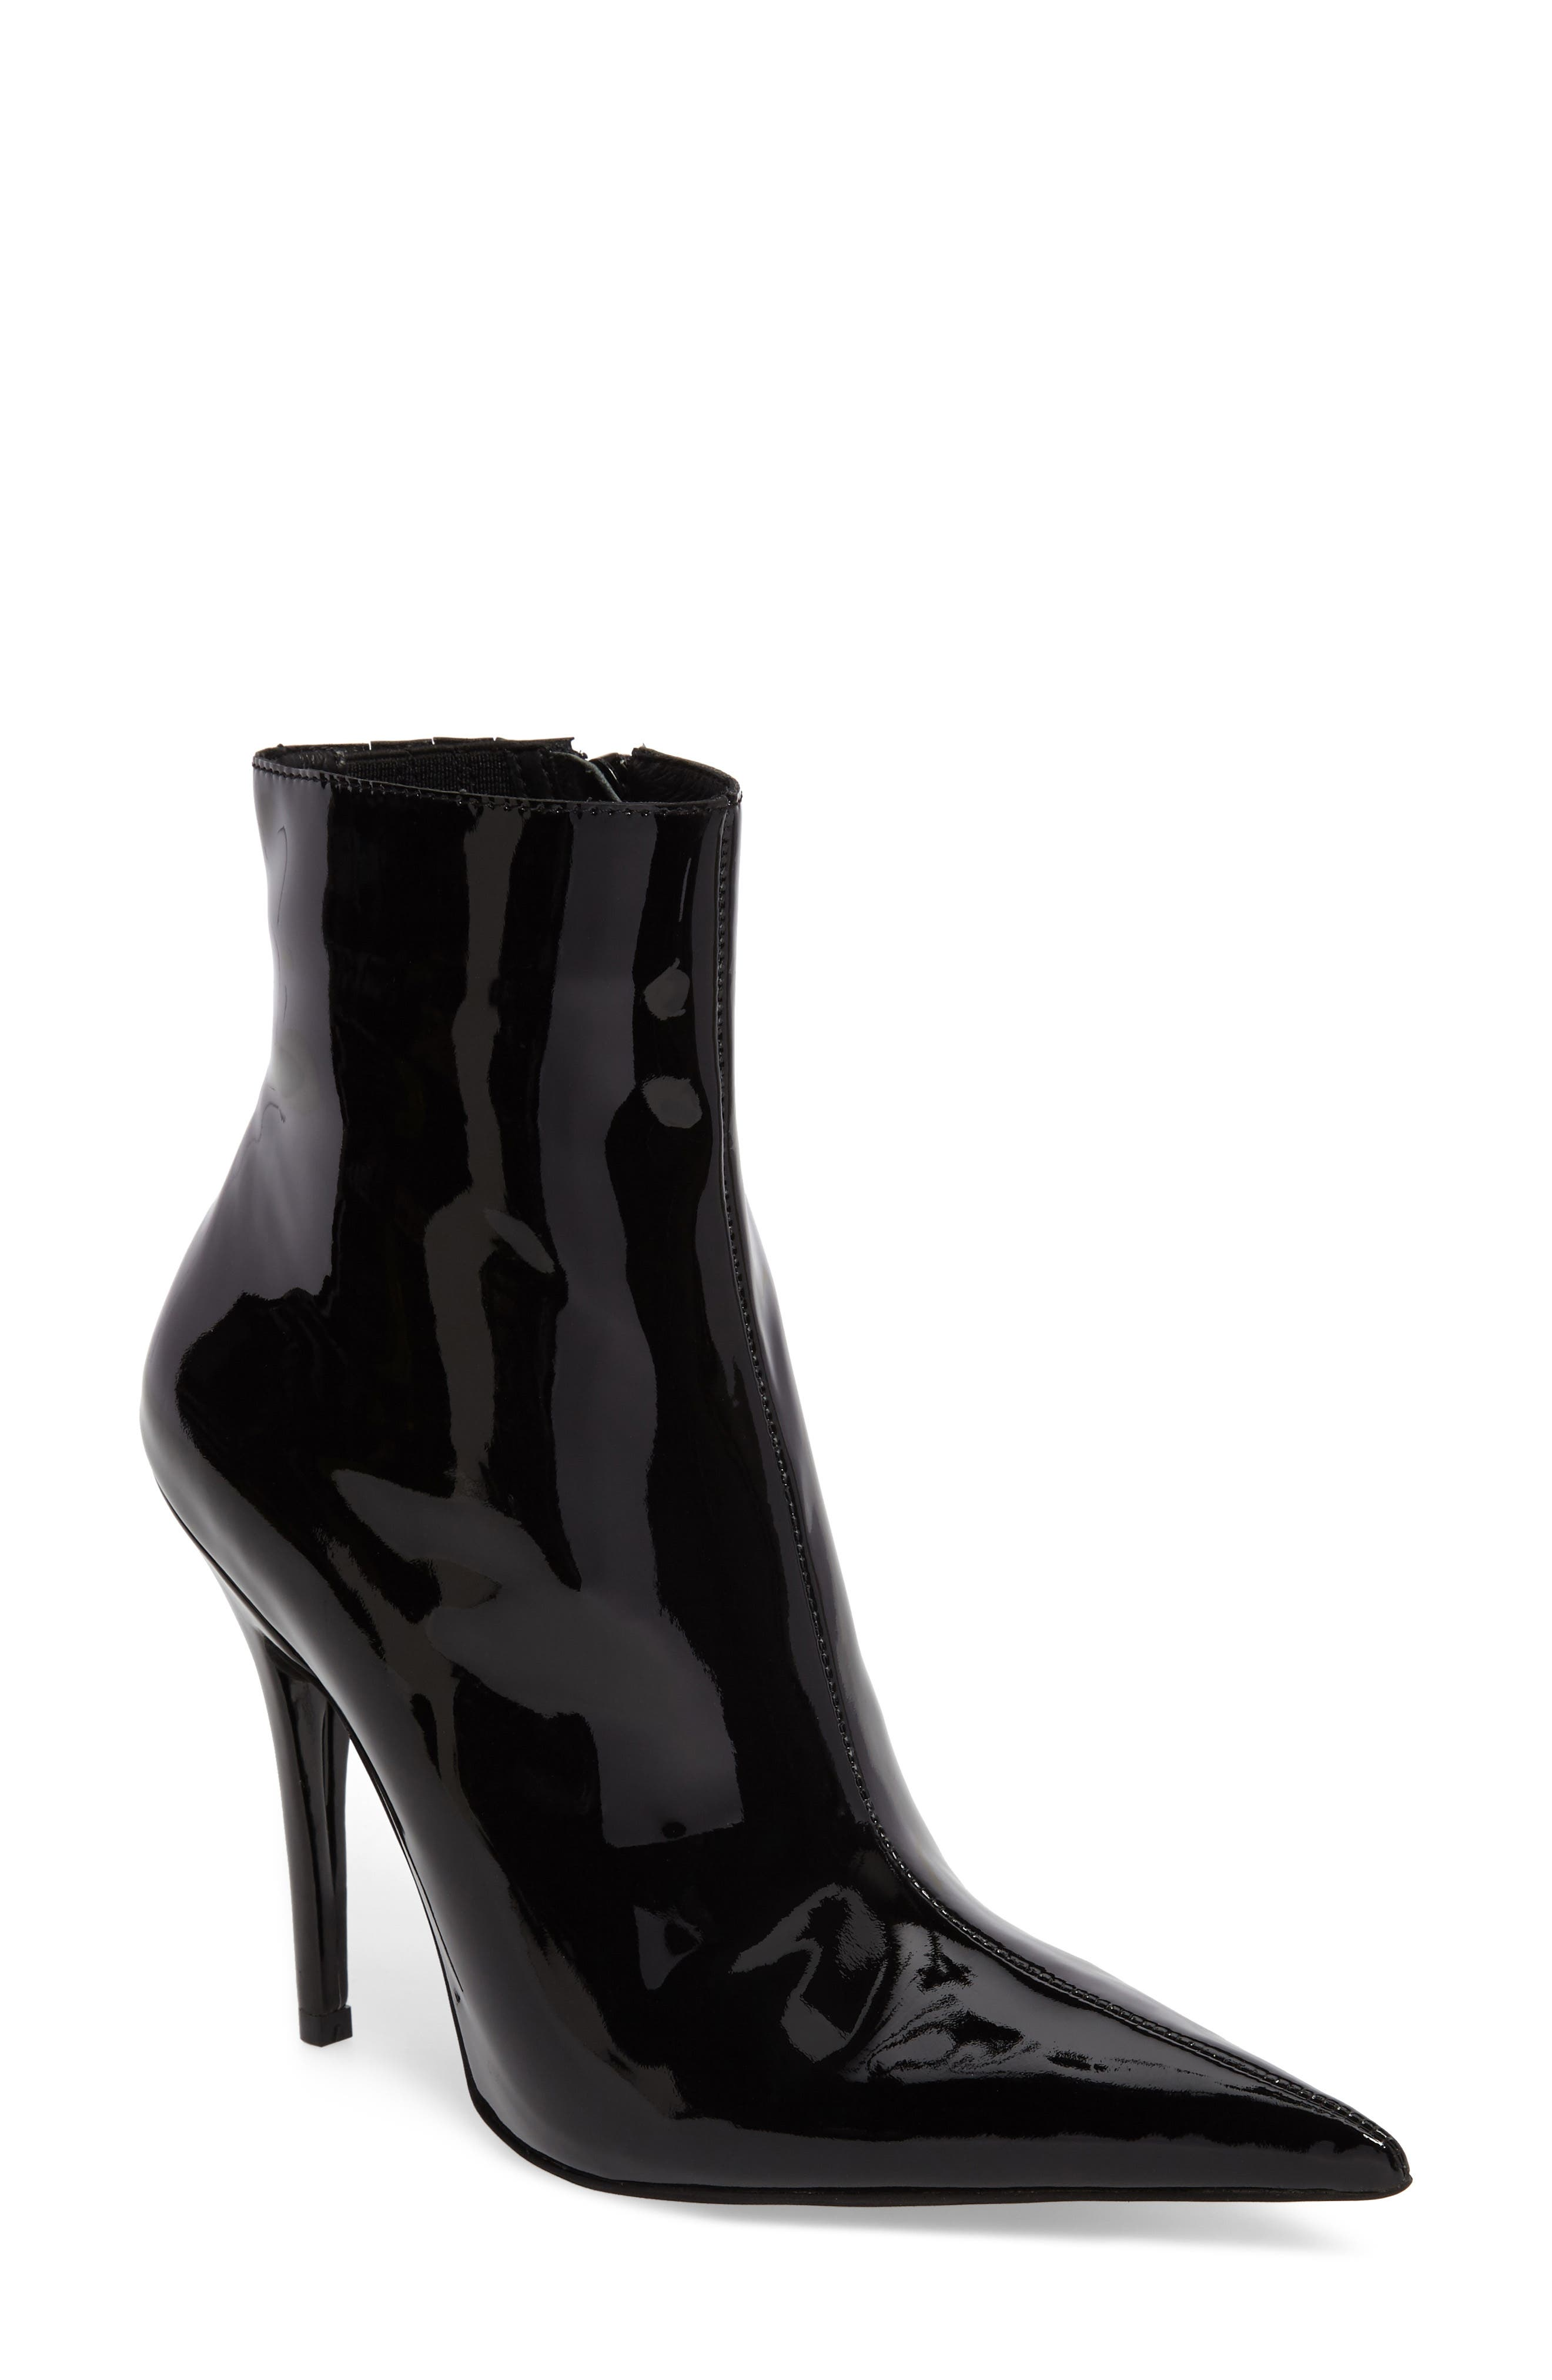 Vedette Pointy Toe Booties,                         Main,                         color, 001